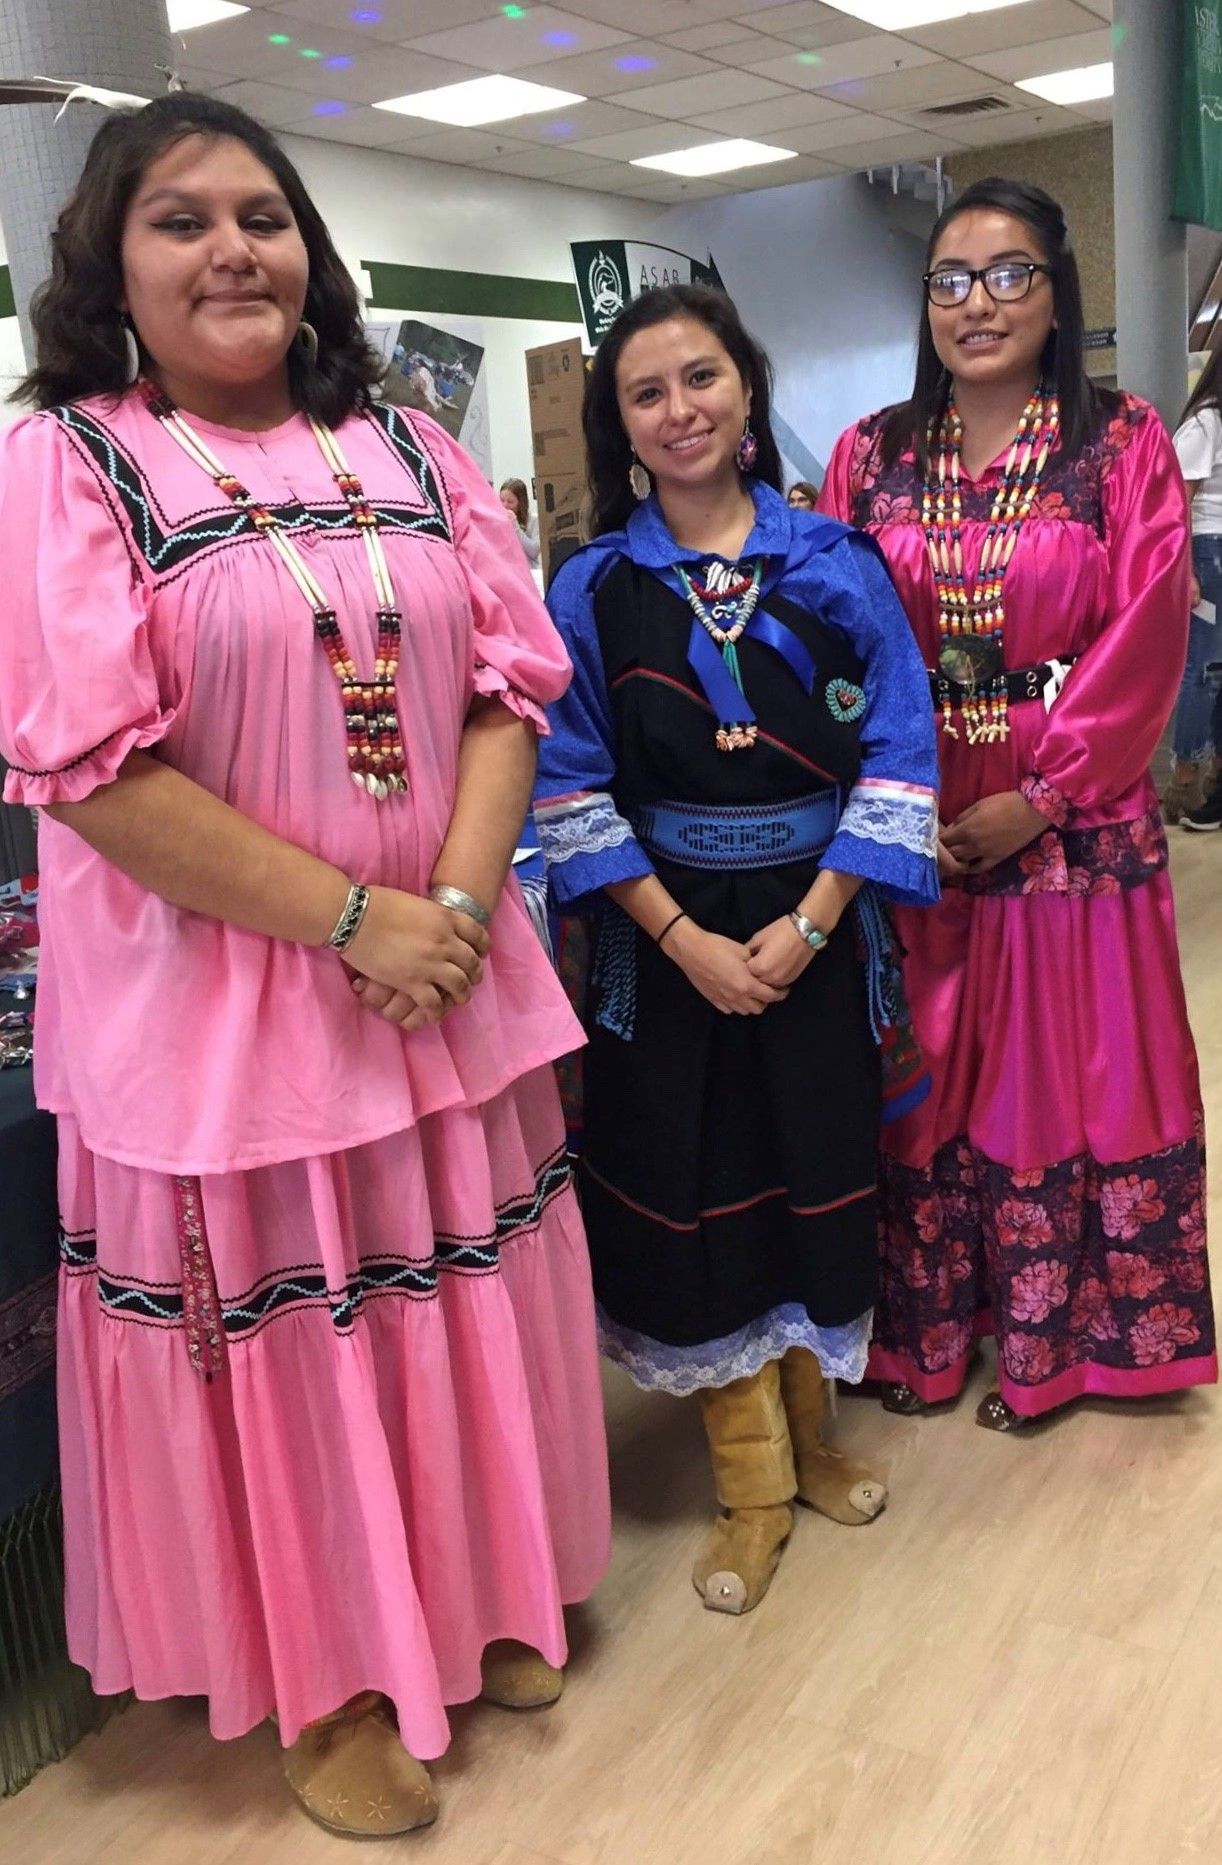 Miss Native Contestants